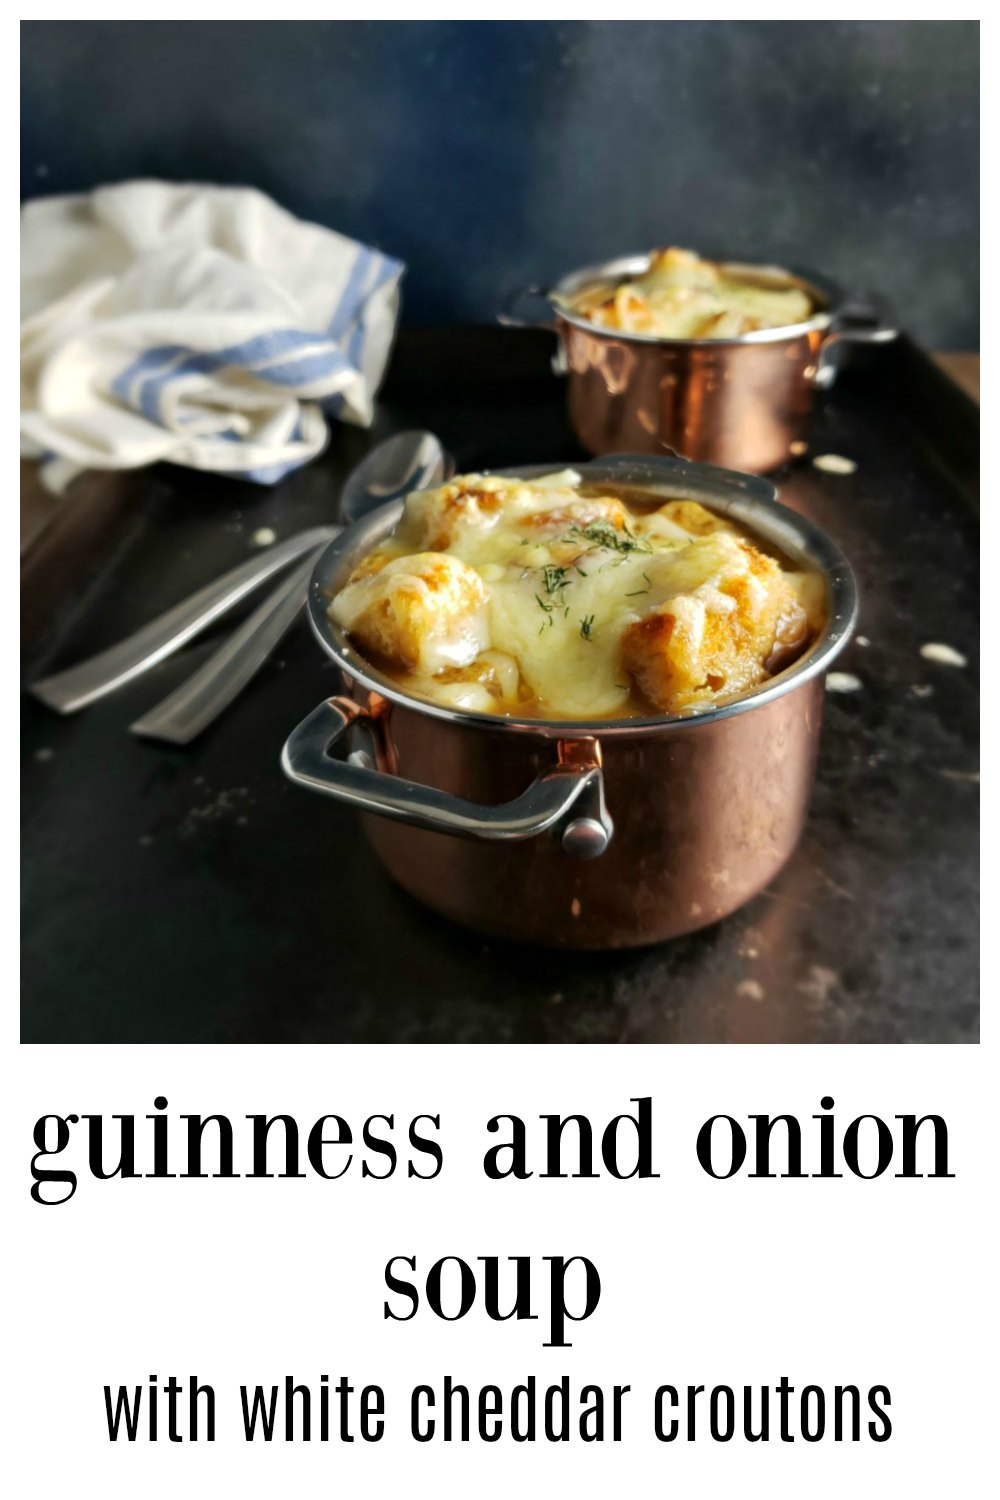 Guinness Onion Soup with White Cheddar Croutons- this is the one you want, the one that takes this soup from a novelty to crave-worthy. Insanely good & everything you need to know. (Doncha hate finding a recipe and going thru 400 comments to figure out how to make it? Not with this one!#GuinessOnionSoup #StPatricksDayRecipe #OnionSoup #GuinnessSoup #StPaddysDayRecipe #GuinnessOnionSoupWhiteCheddar #IrishG